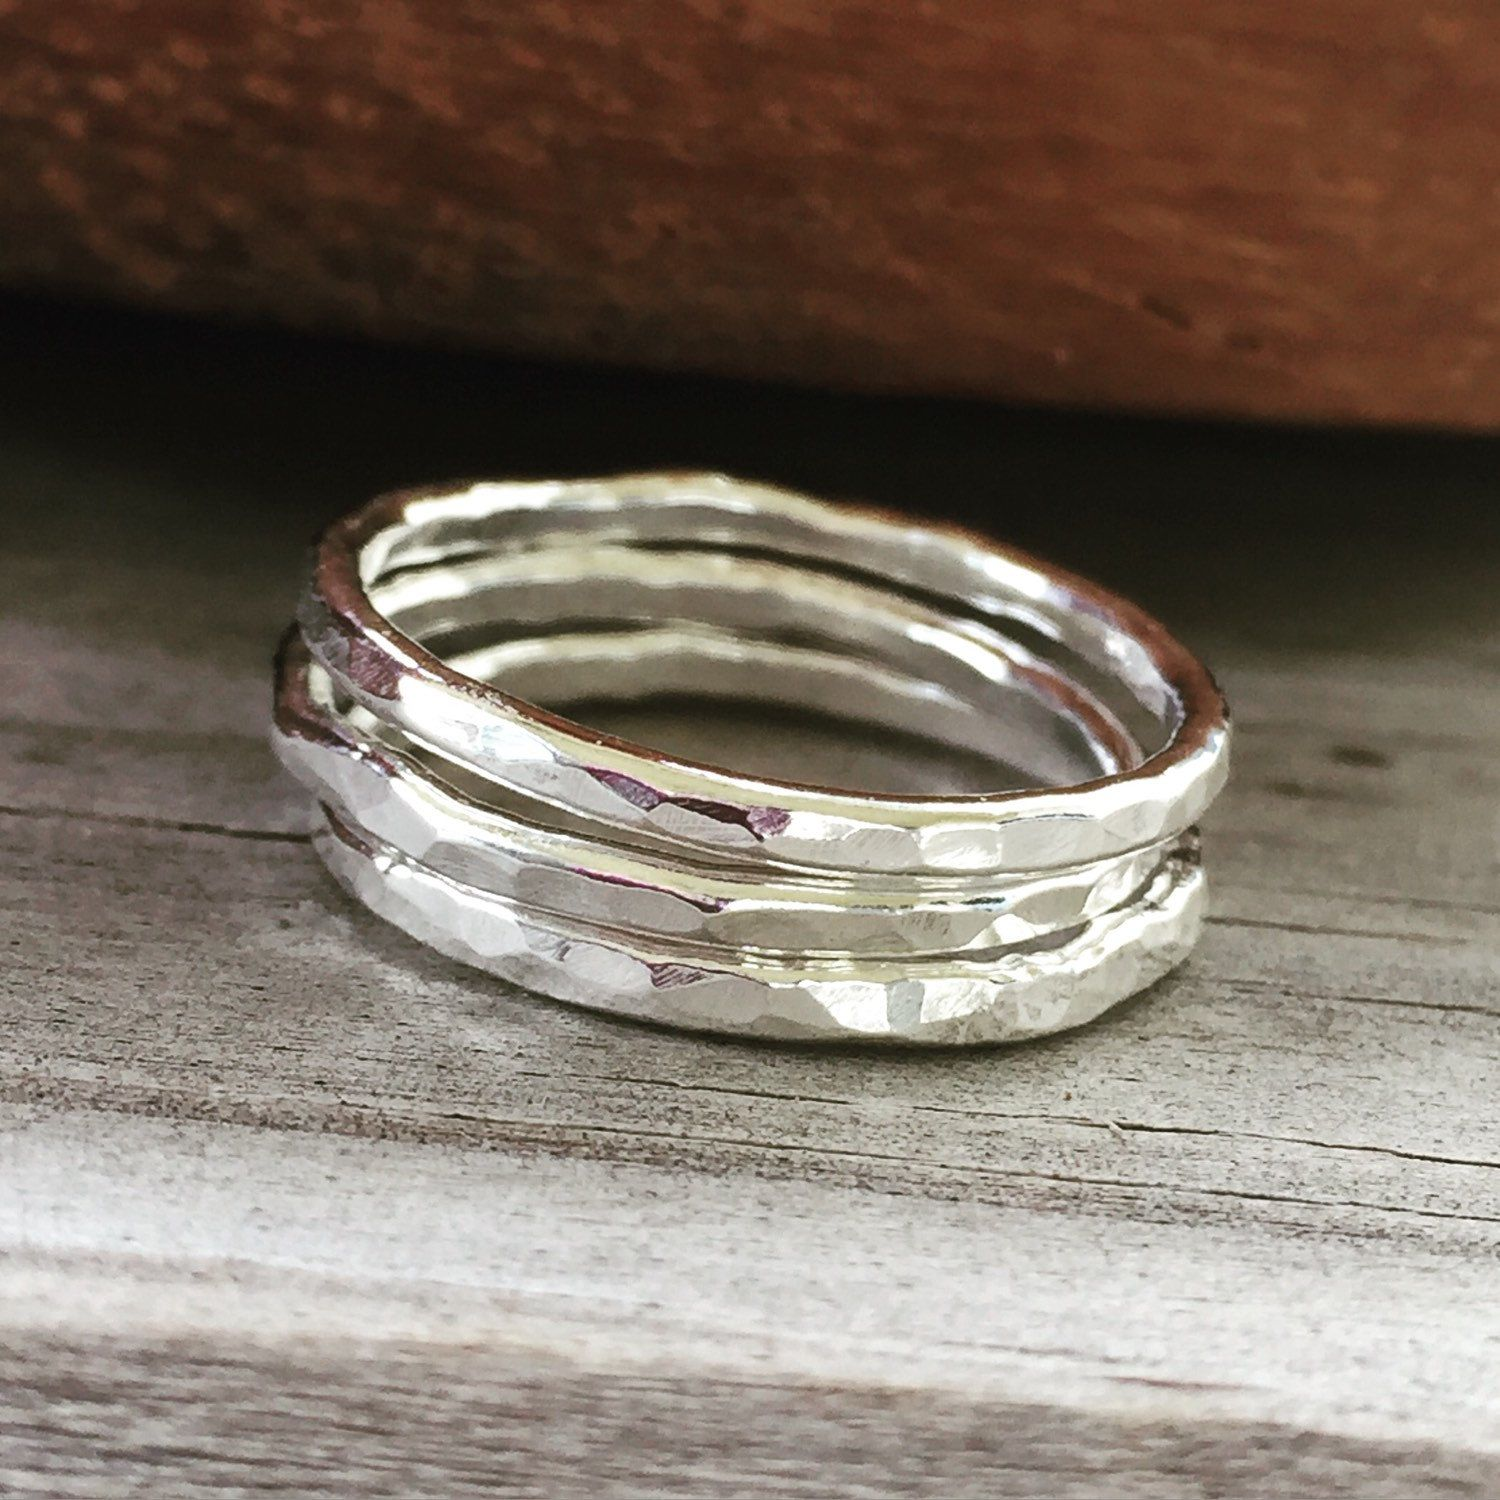 New! Fine Silver (99.9% silver- more precious than Sterling) I've handmade and hand hammered thin stackable rings. Perfect plain or with several stacked together- they are shiny, strong, versatile and comfortable, as well as being very affordable.